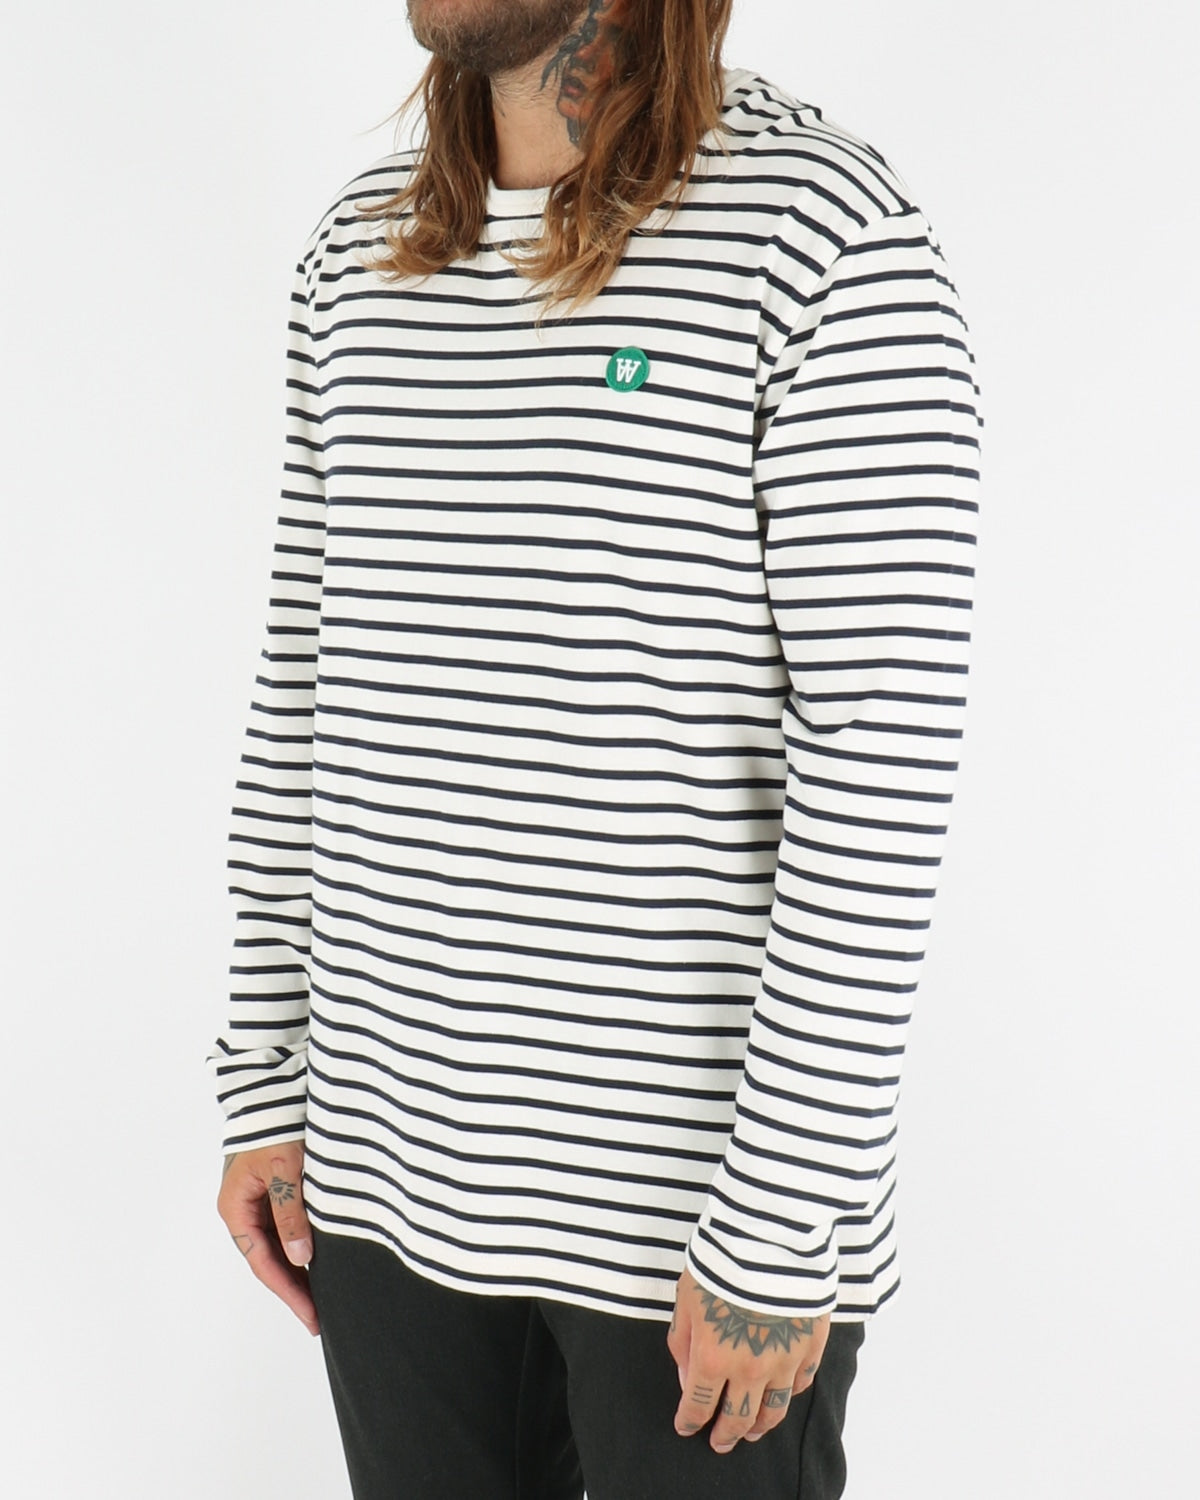 wood wood_mel longsleeve_offwhite navy stripes_view_2_3